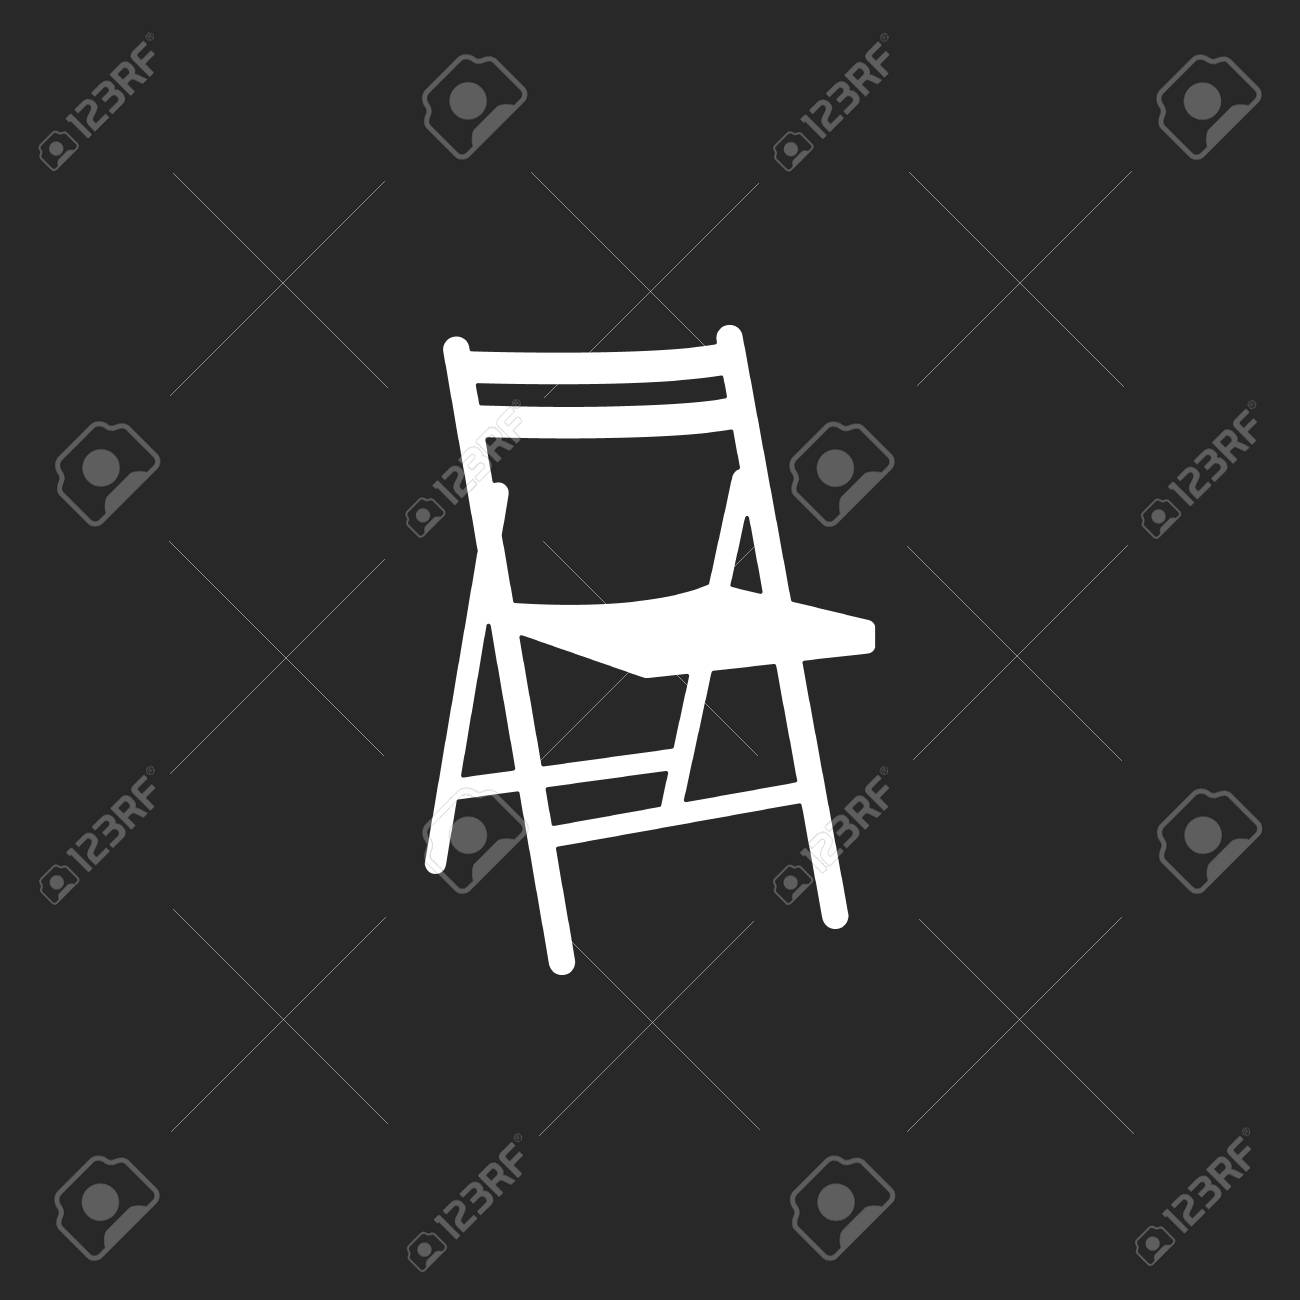 festival folding chair cheap reception chairs for sale sign simple icon on background royalty free stock vector 59841043